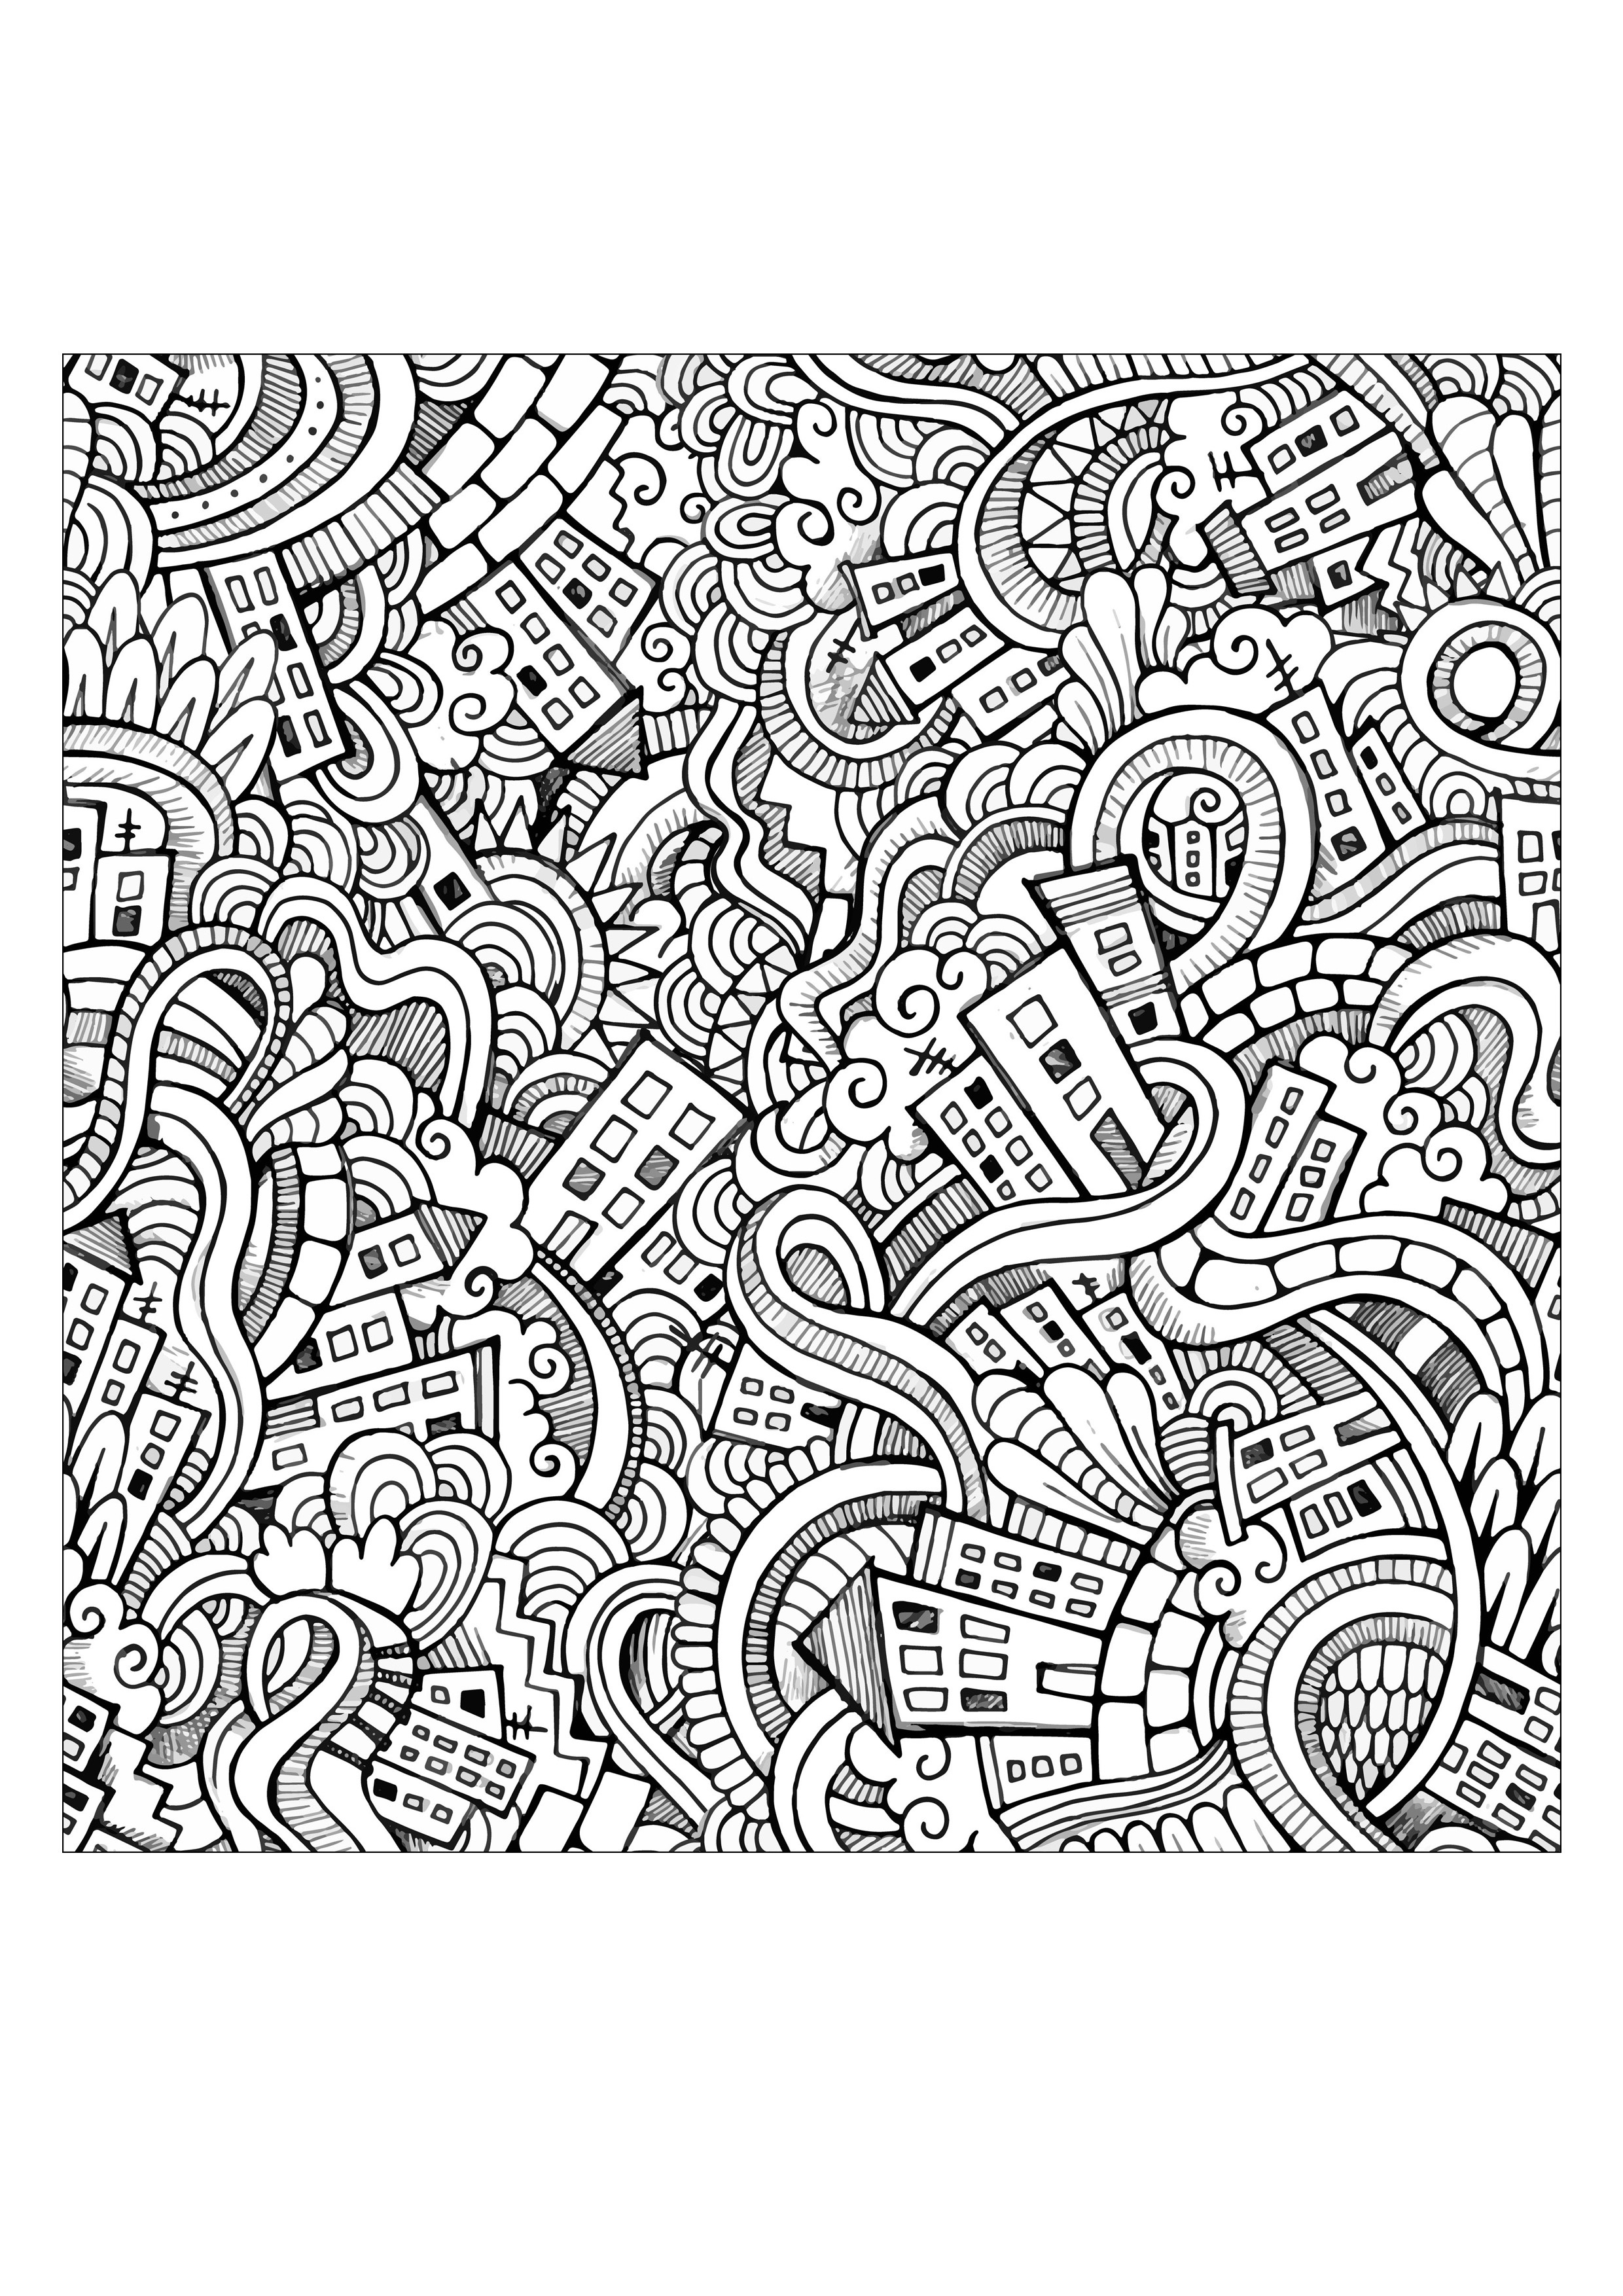 Doodle Art To Download - Doodle Art Kids Coloring Pages - Free Printable Doodle Art Coloring Pages